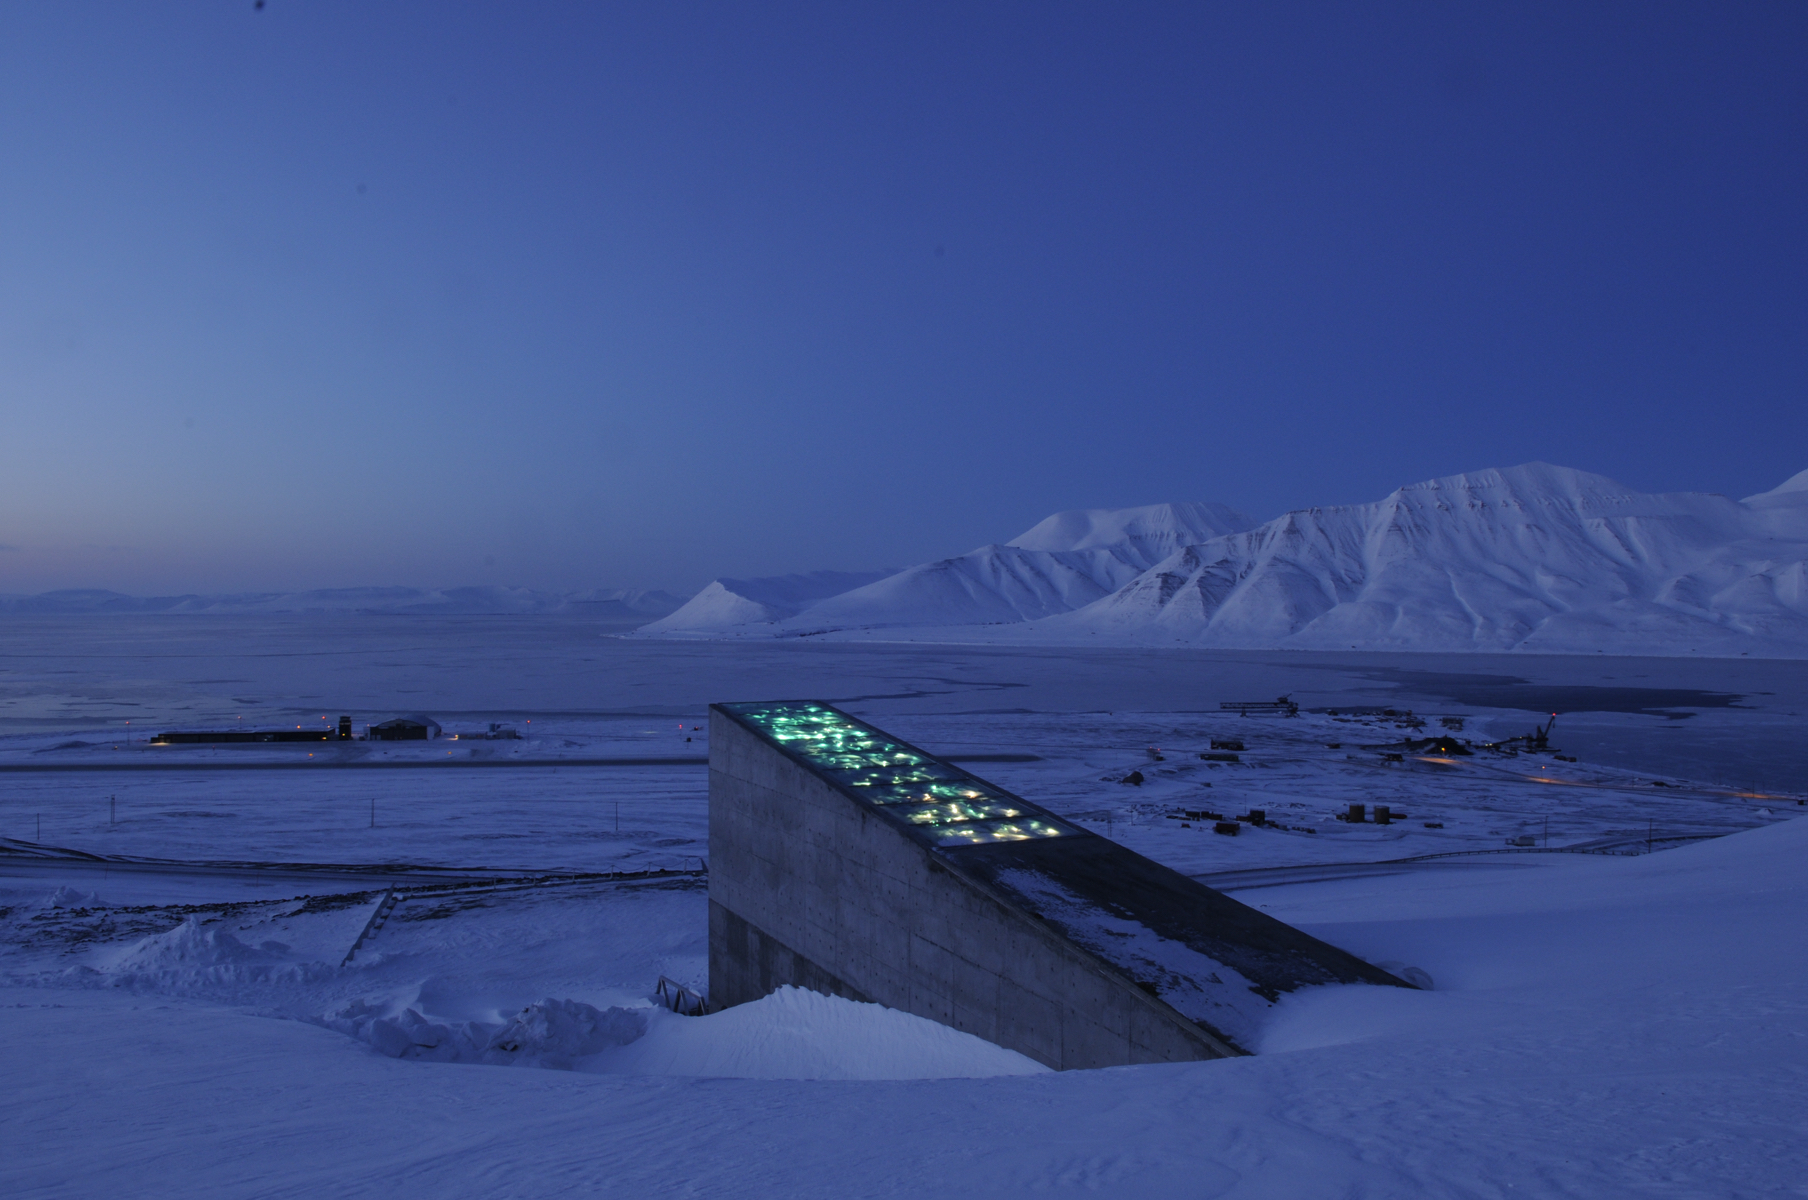 65af5373 The Svalbard Global Seed Vault sits on a Norwegian archipelago in the  Arctic Ocean. Image courtesy of the Crop Trust.